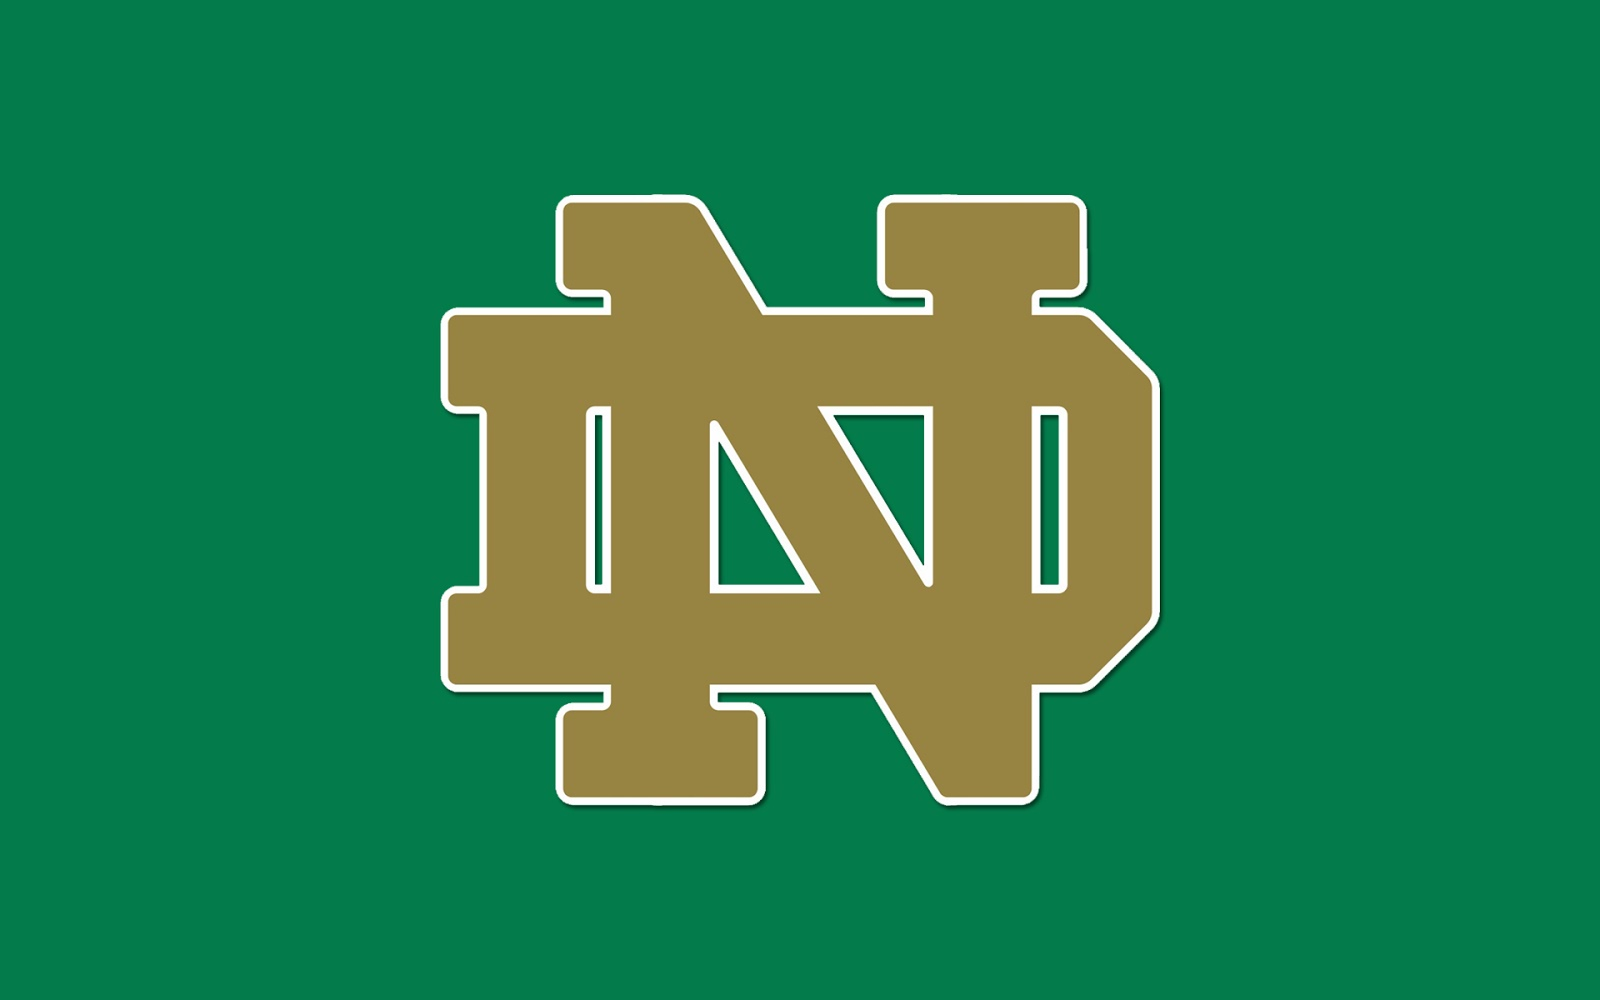 ... Boston College Hockey Blog: Previewing the Notre Dame Fighting Irish